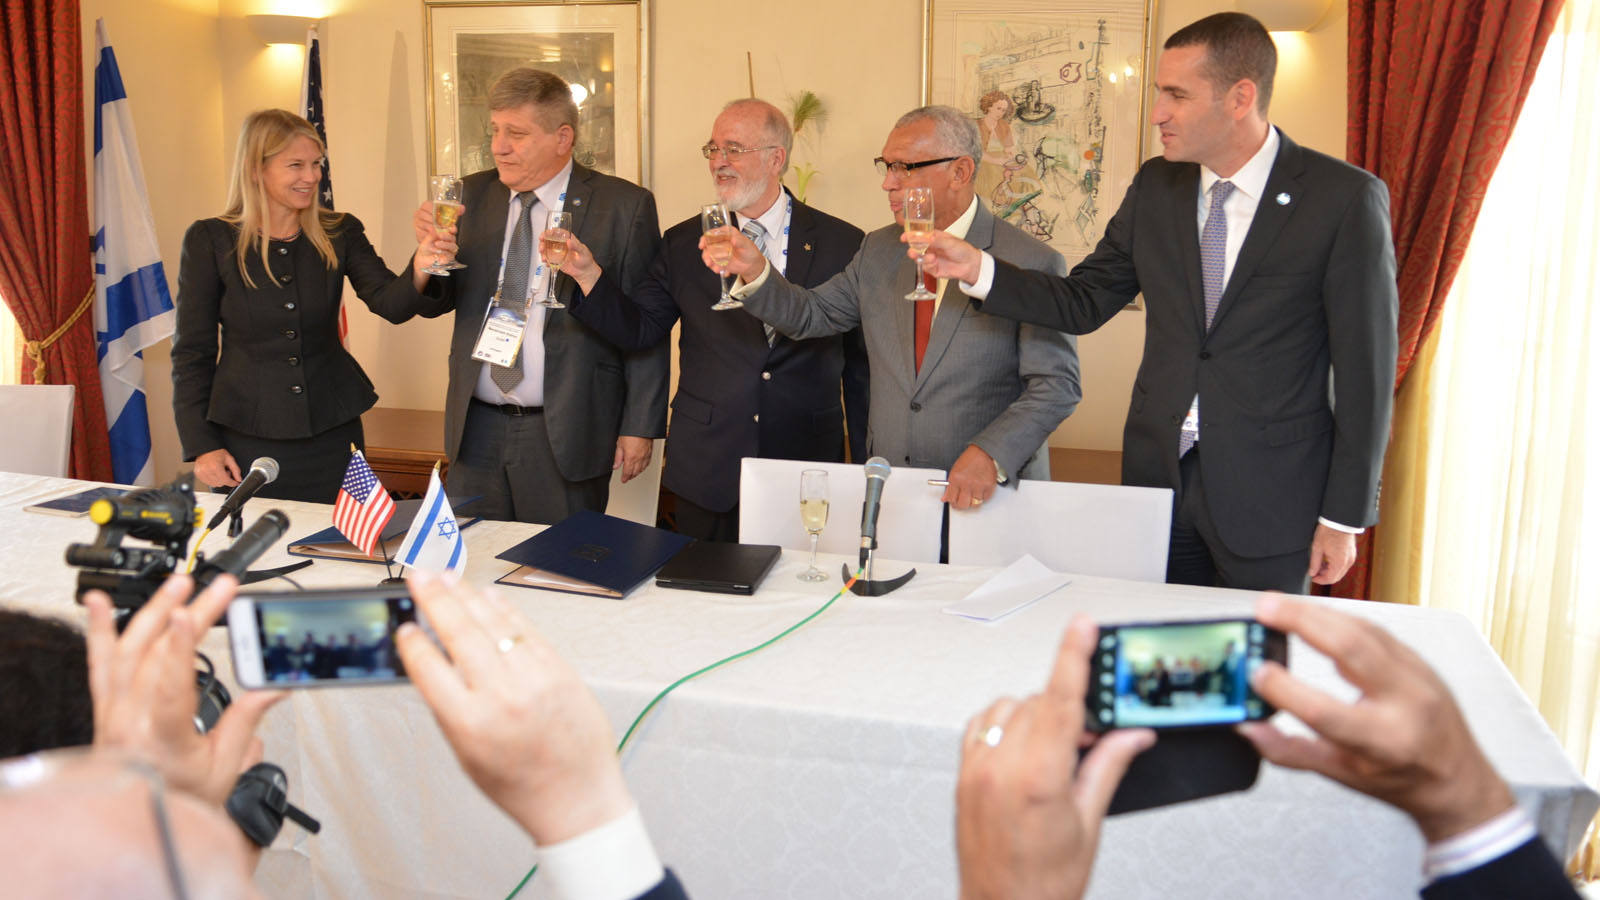 Raising a l'chaim to the new NASA-Israel Space Agency cooperation agreement at the International Astronautical Congress in Jerusalem. Photo by Yair Zrika